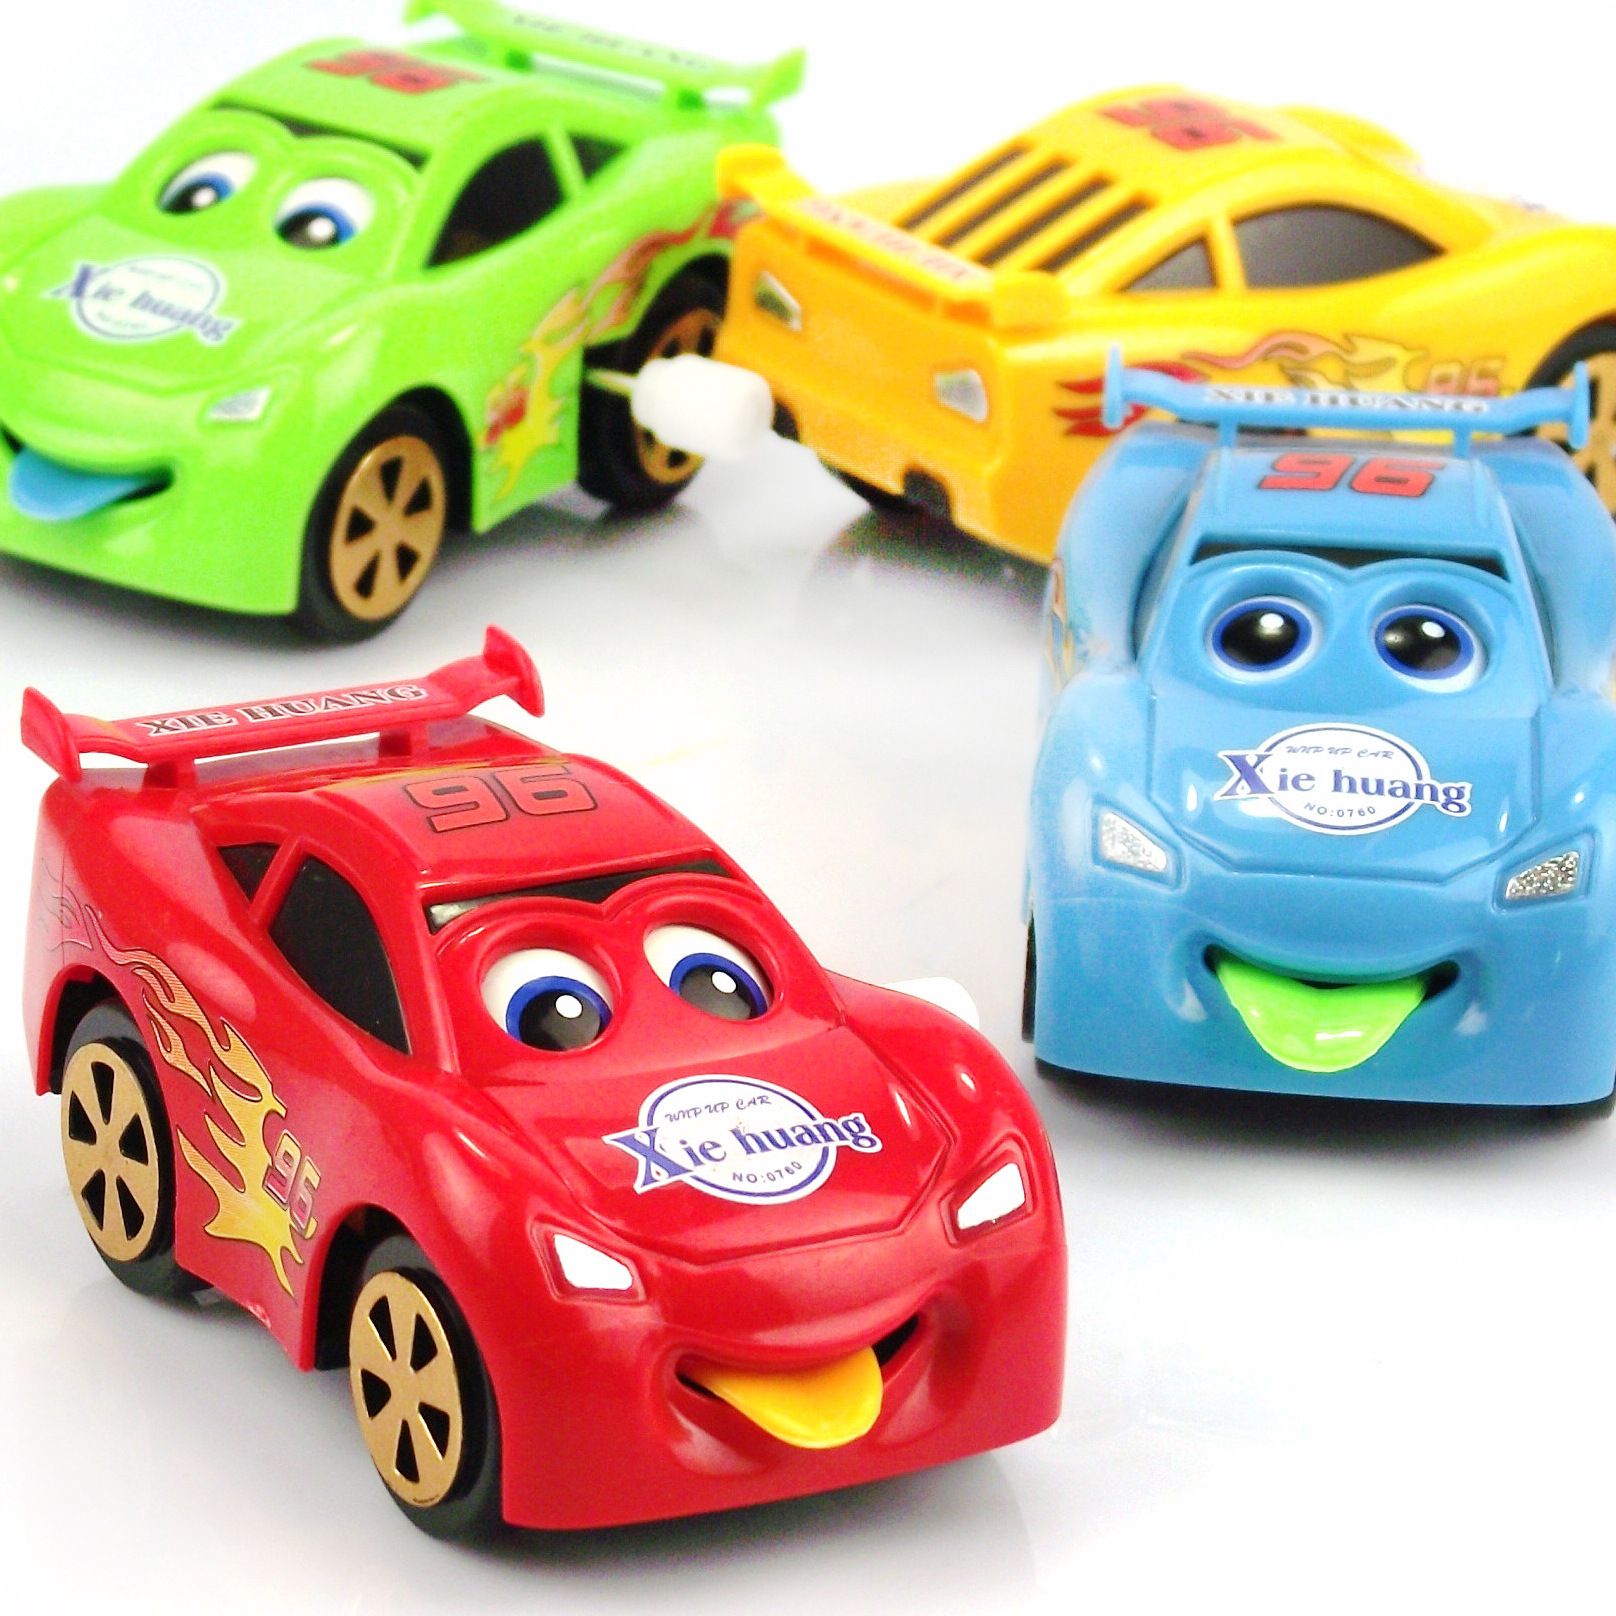 2685-Winding Car General Mobilization Automatic Turning Spring Car Toy Eyes Tongue Moving Car